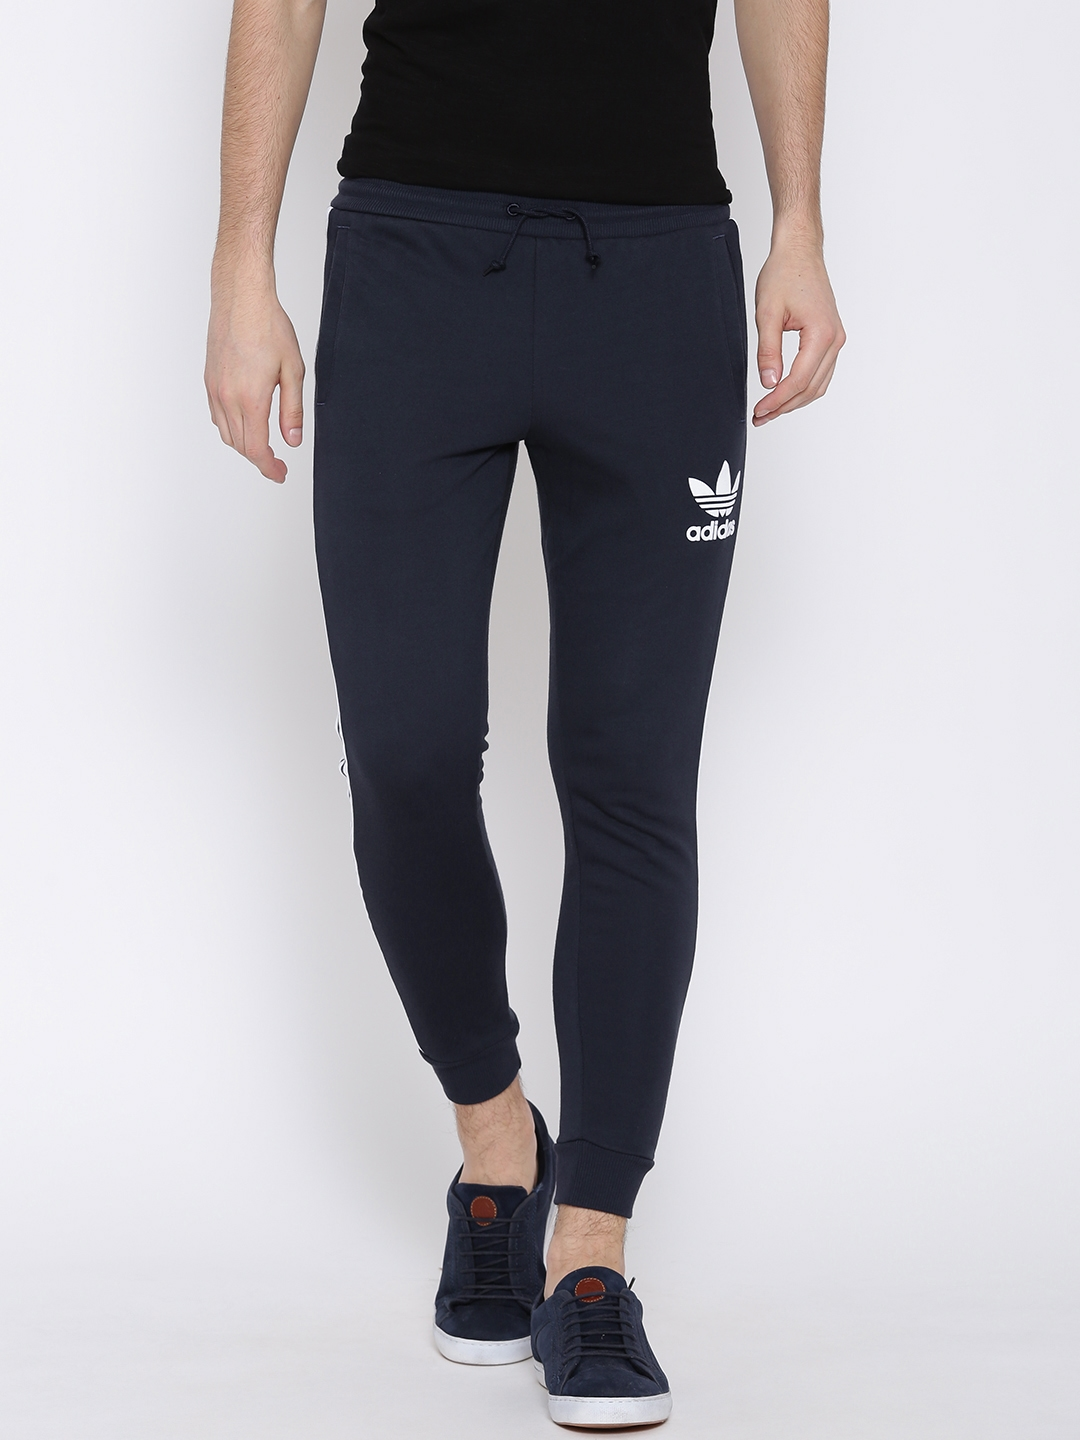 adcf80eaba11 Buy ADIDAS Originals Navy CLFN FT Track Pants - Track Pants for Men ...